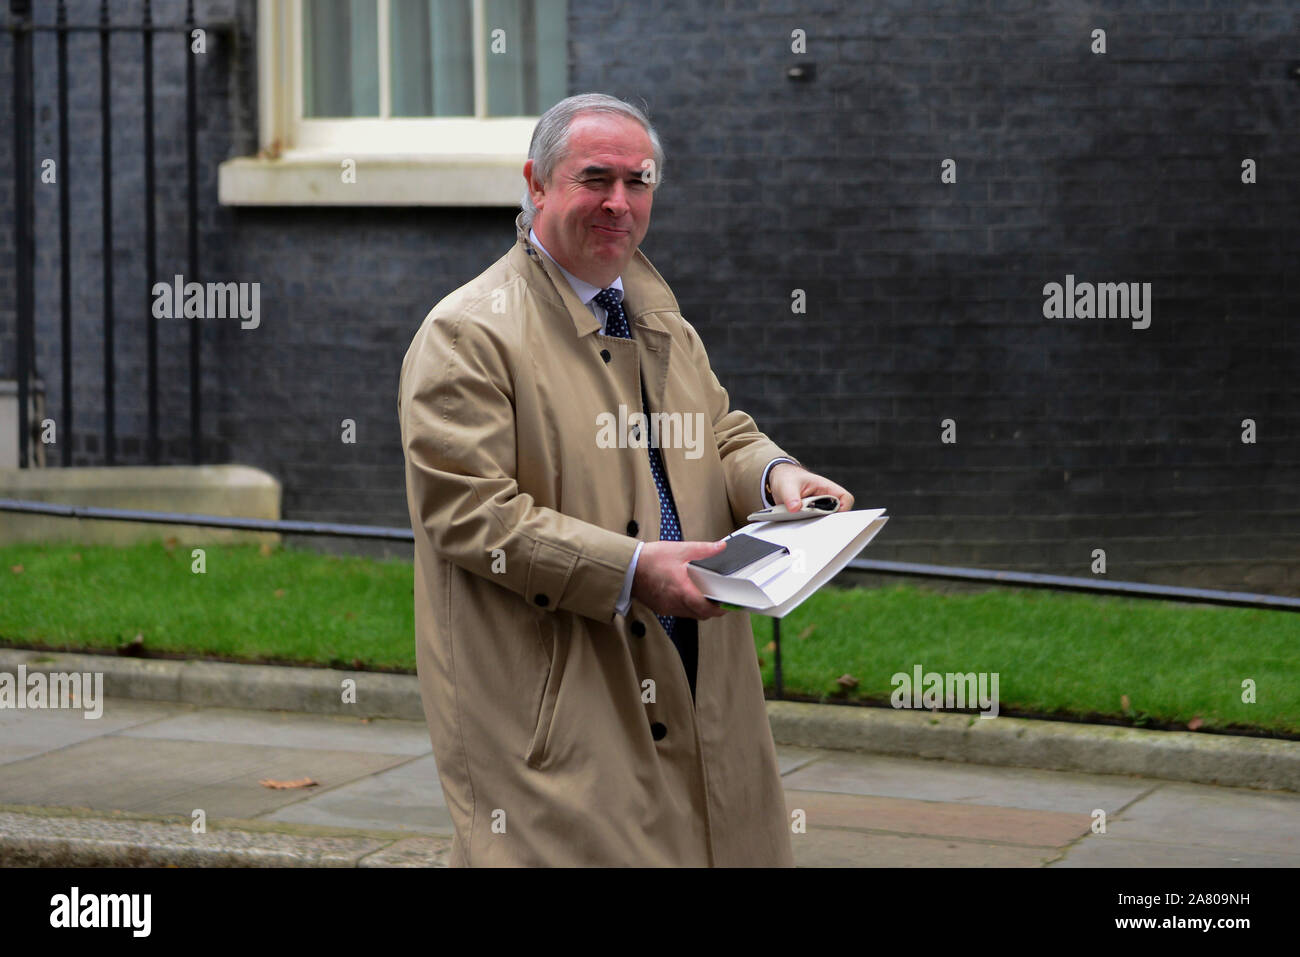 London, UK. 5th November 2019. Attorney General, Geoffrey Cox, leaving Downing Street after a Cabinet Meeting. Claire Doherty/Alamy Live News. Stock Photo